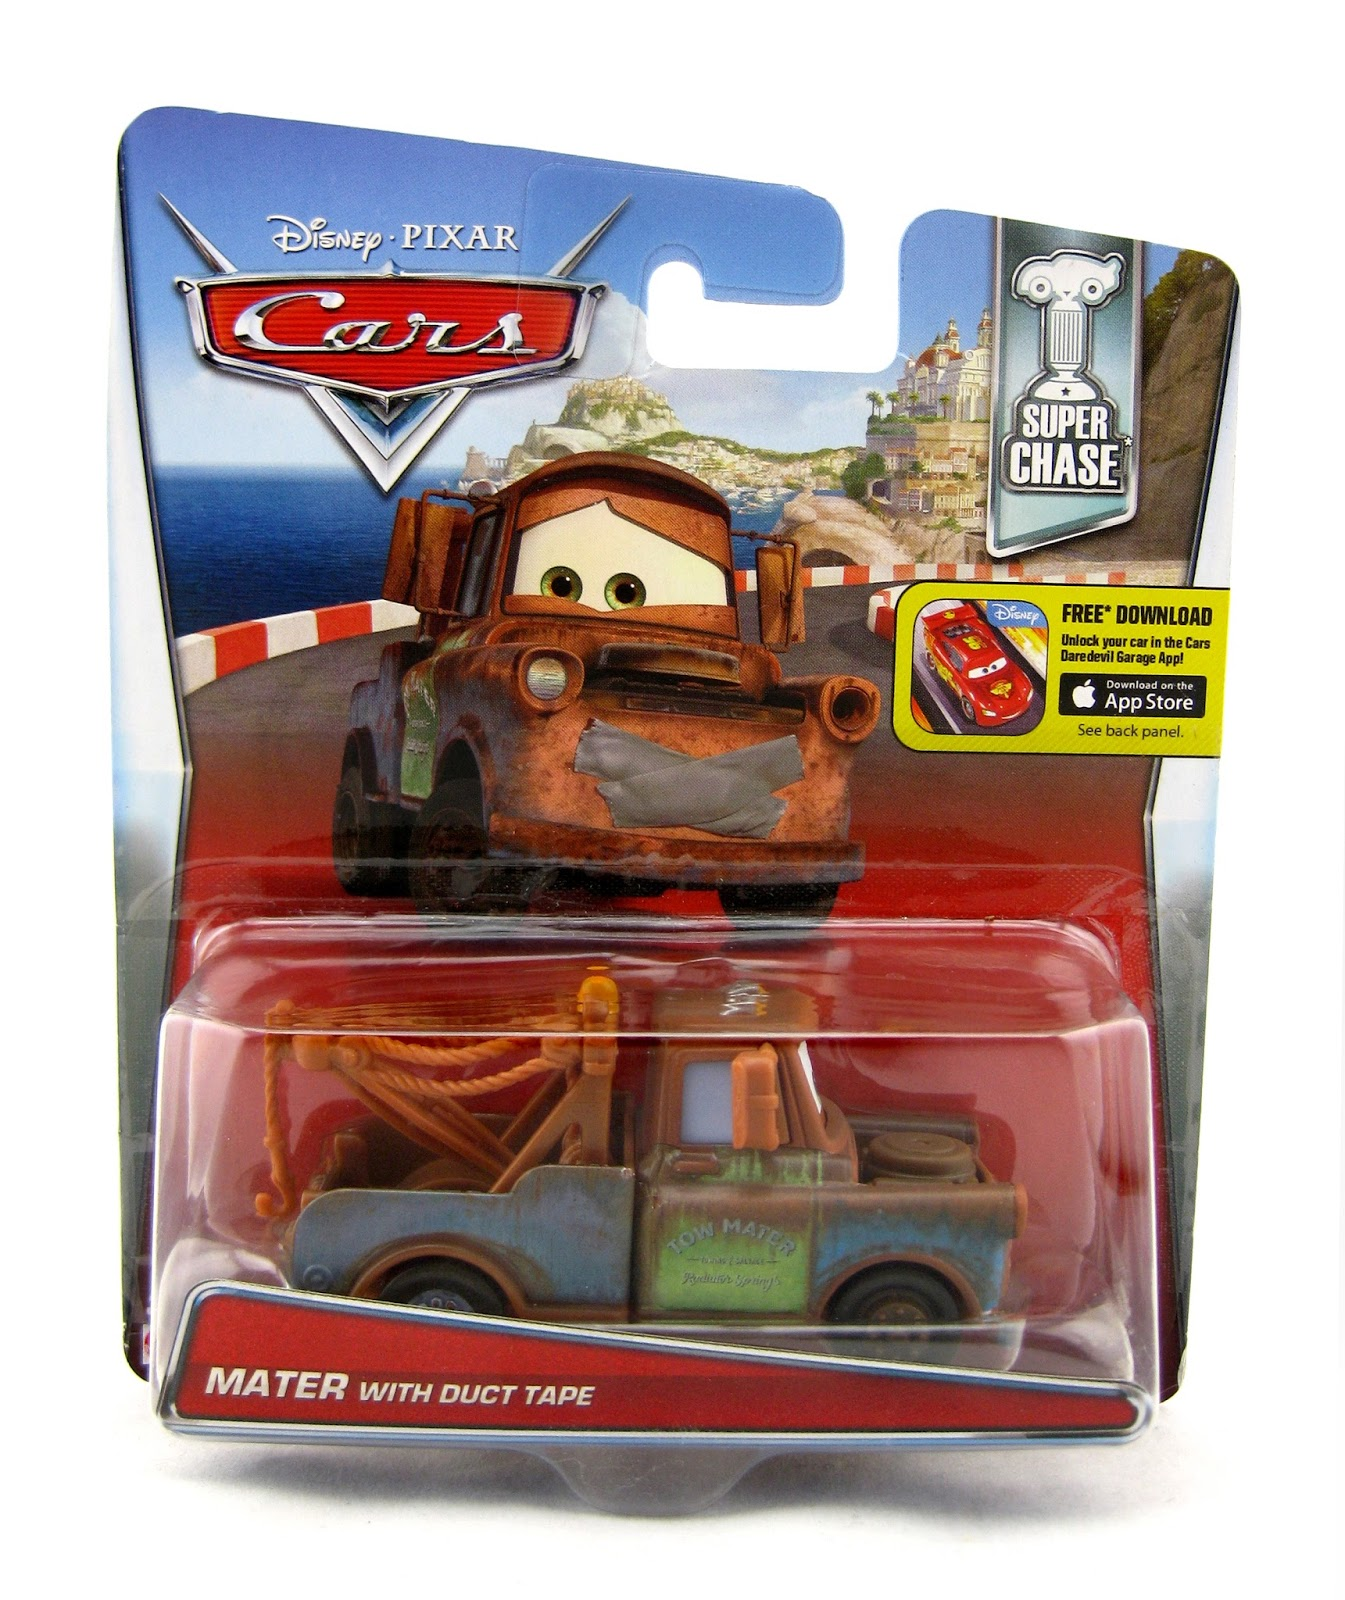 Dan The Pixar Fan Cars 2 Mater With Duct Tape Super Chase